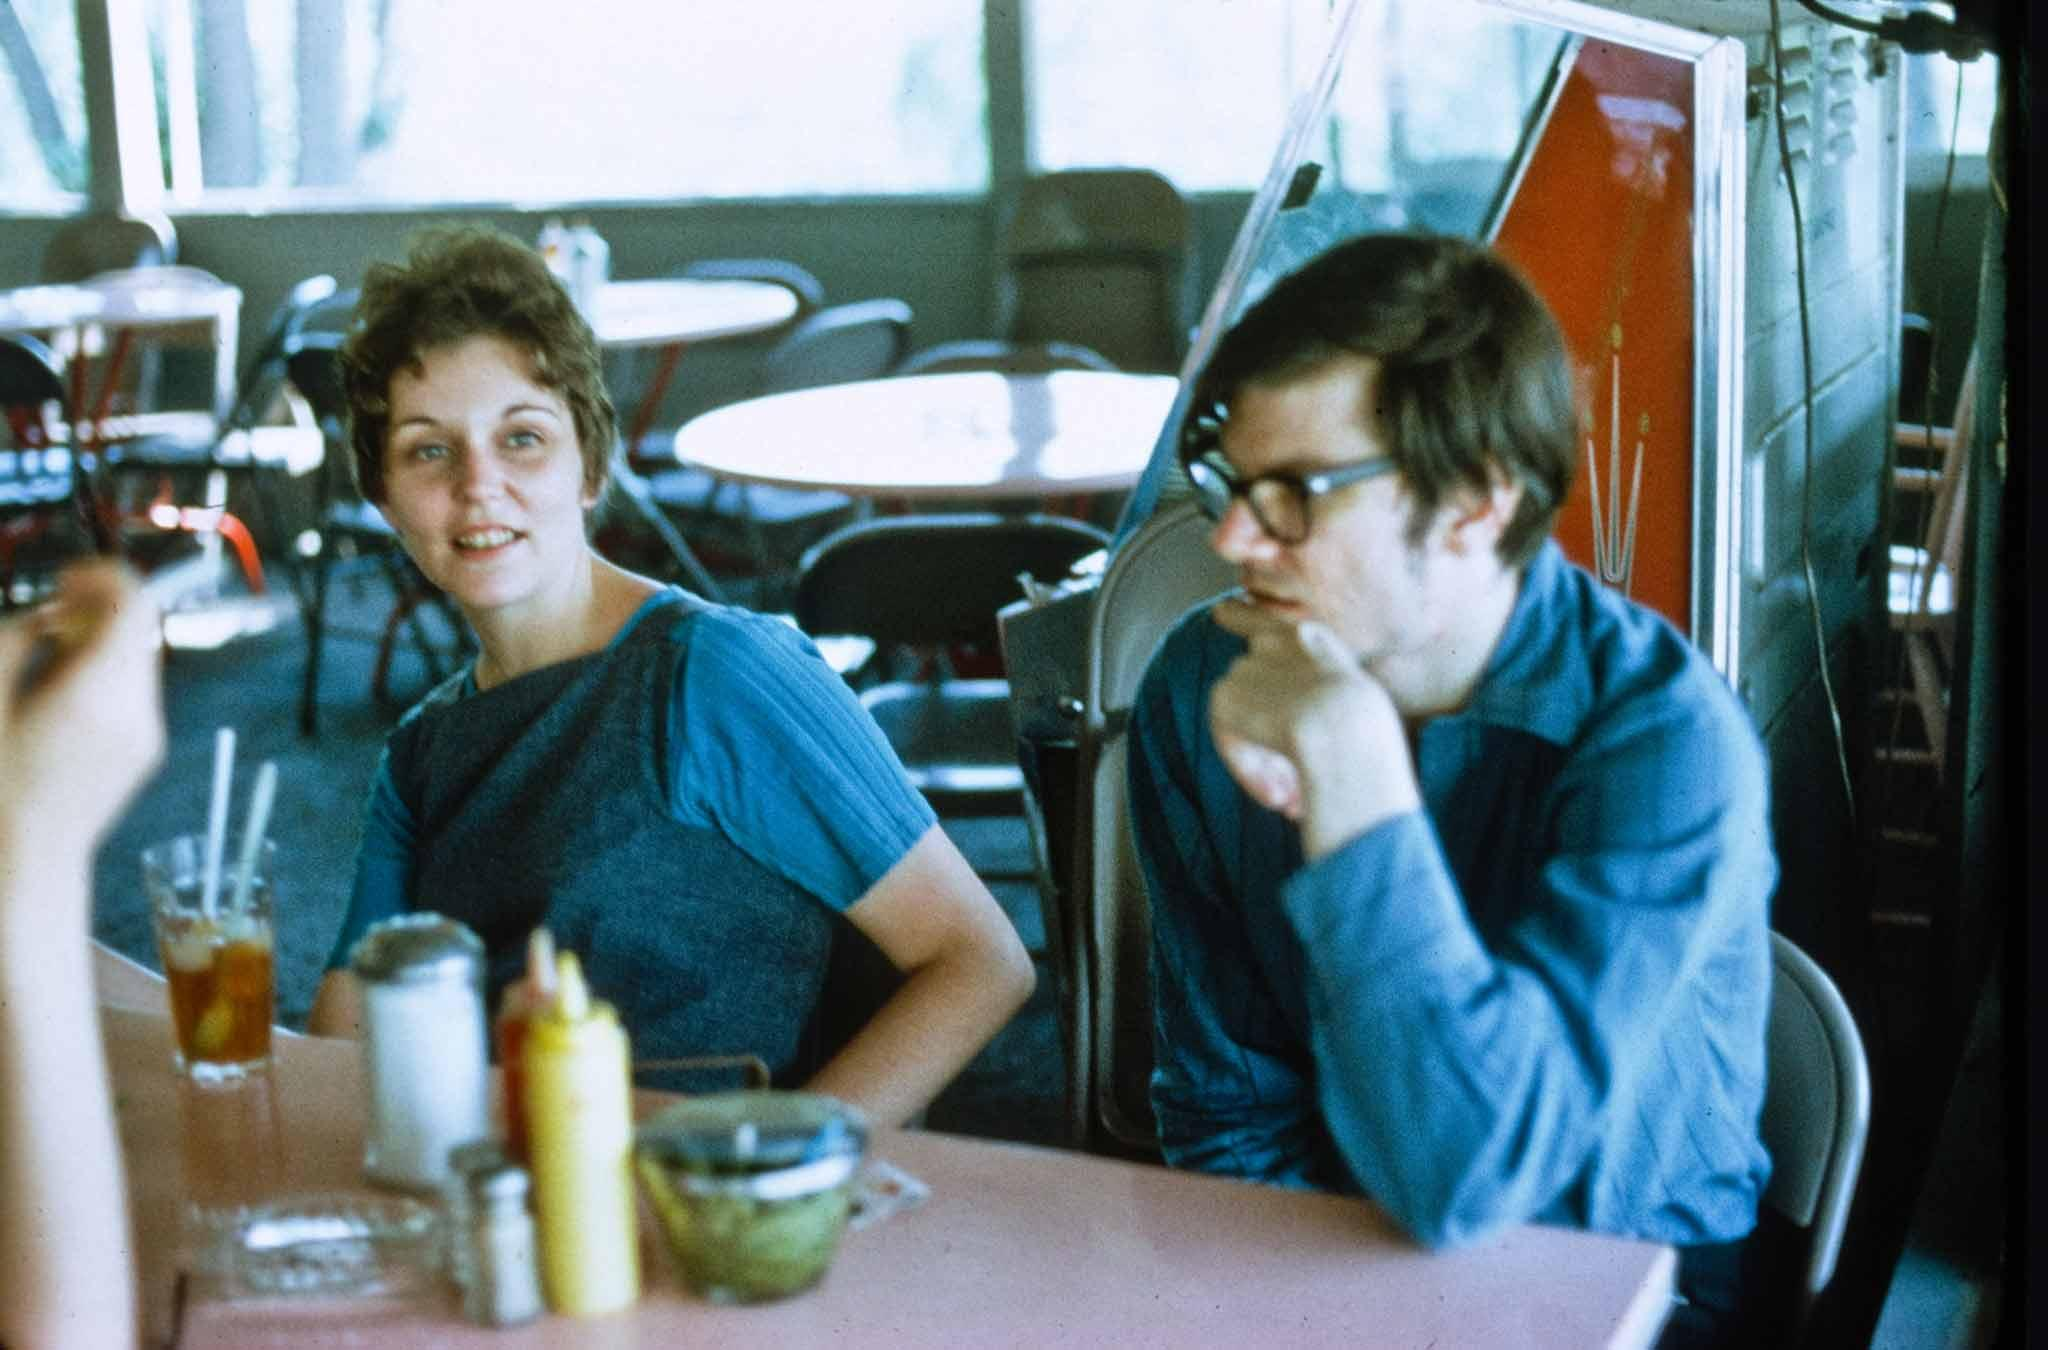 Holt and Smithson in a diner on a trip to a slate quarry in New Jersey.